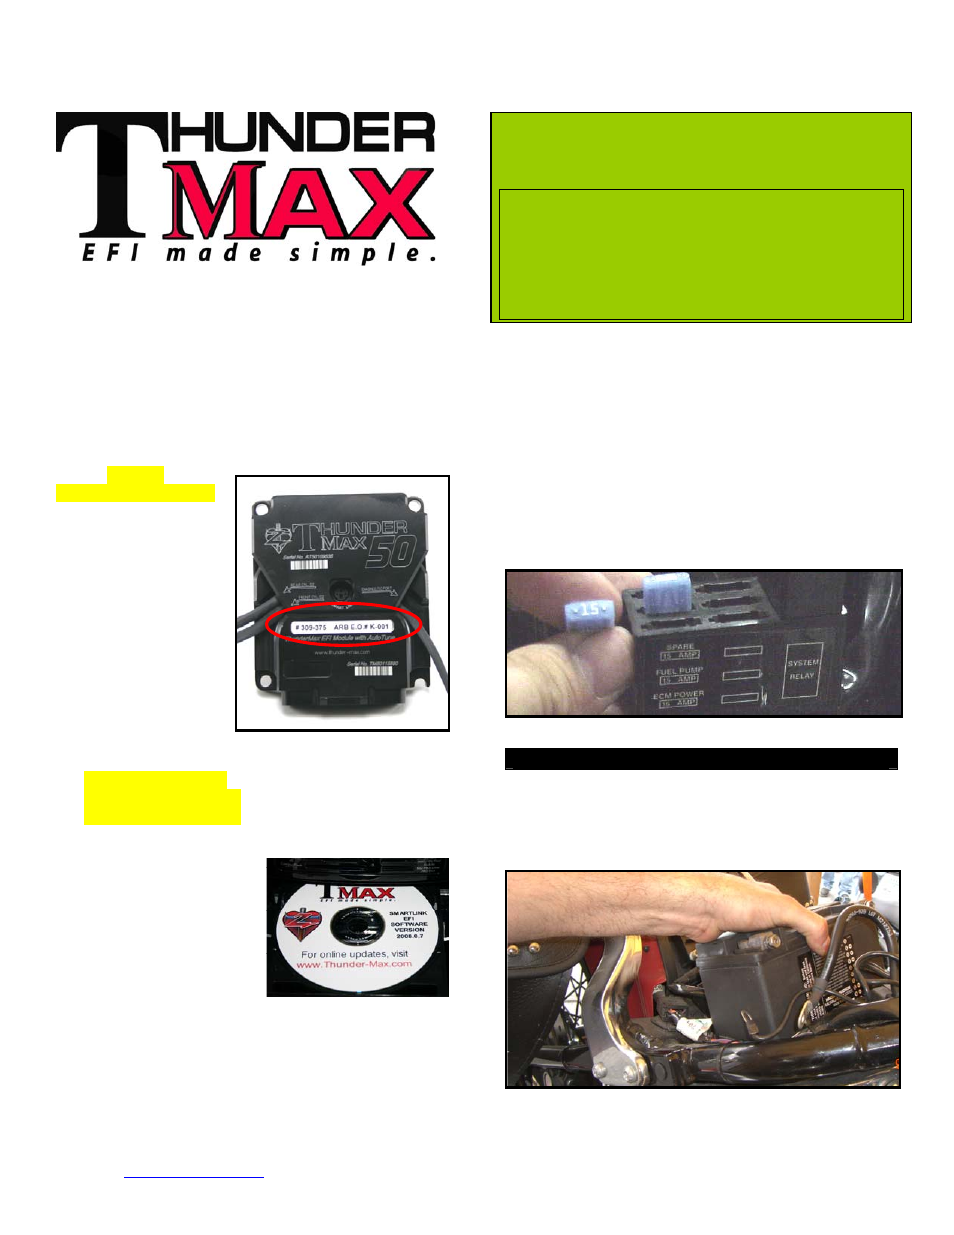 Thundermax Models W 96engine Arb Eo K 001 User Manual 7 Pages Fuse Box On Motorcycle Also For 1 2